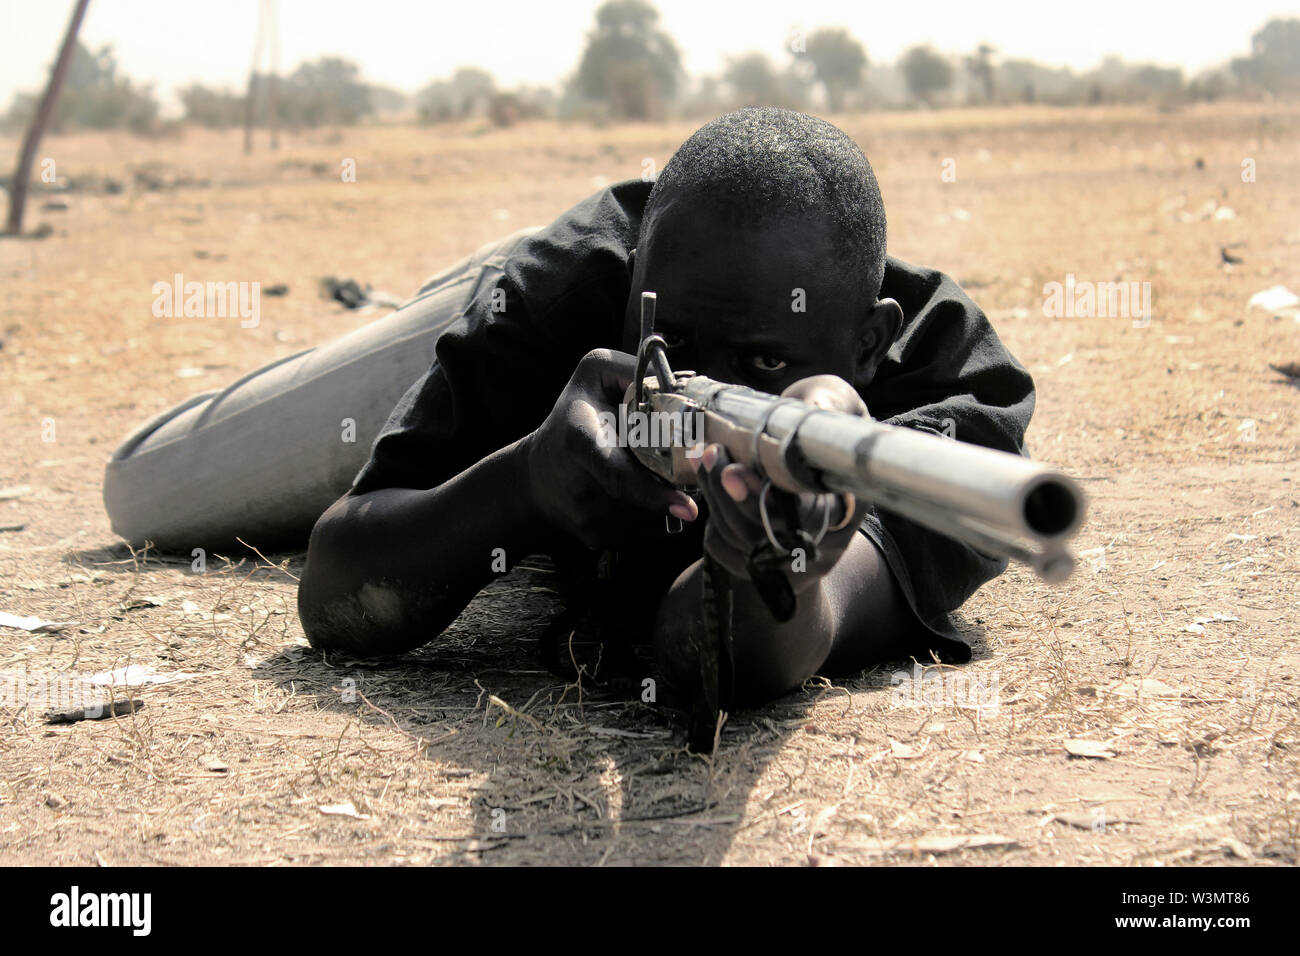 Children of returnee displaced persons are secured by local vigilantes who parade schools where learning activities take place. Siliramda Gadzama, member of the Lassa vigilante group, demonstrates how he bravely shot 50 members of Boko Haram in the Sambisa forest, Boko Haram hideout in Borno state. - Stock Image